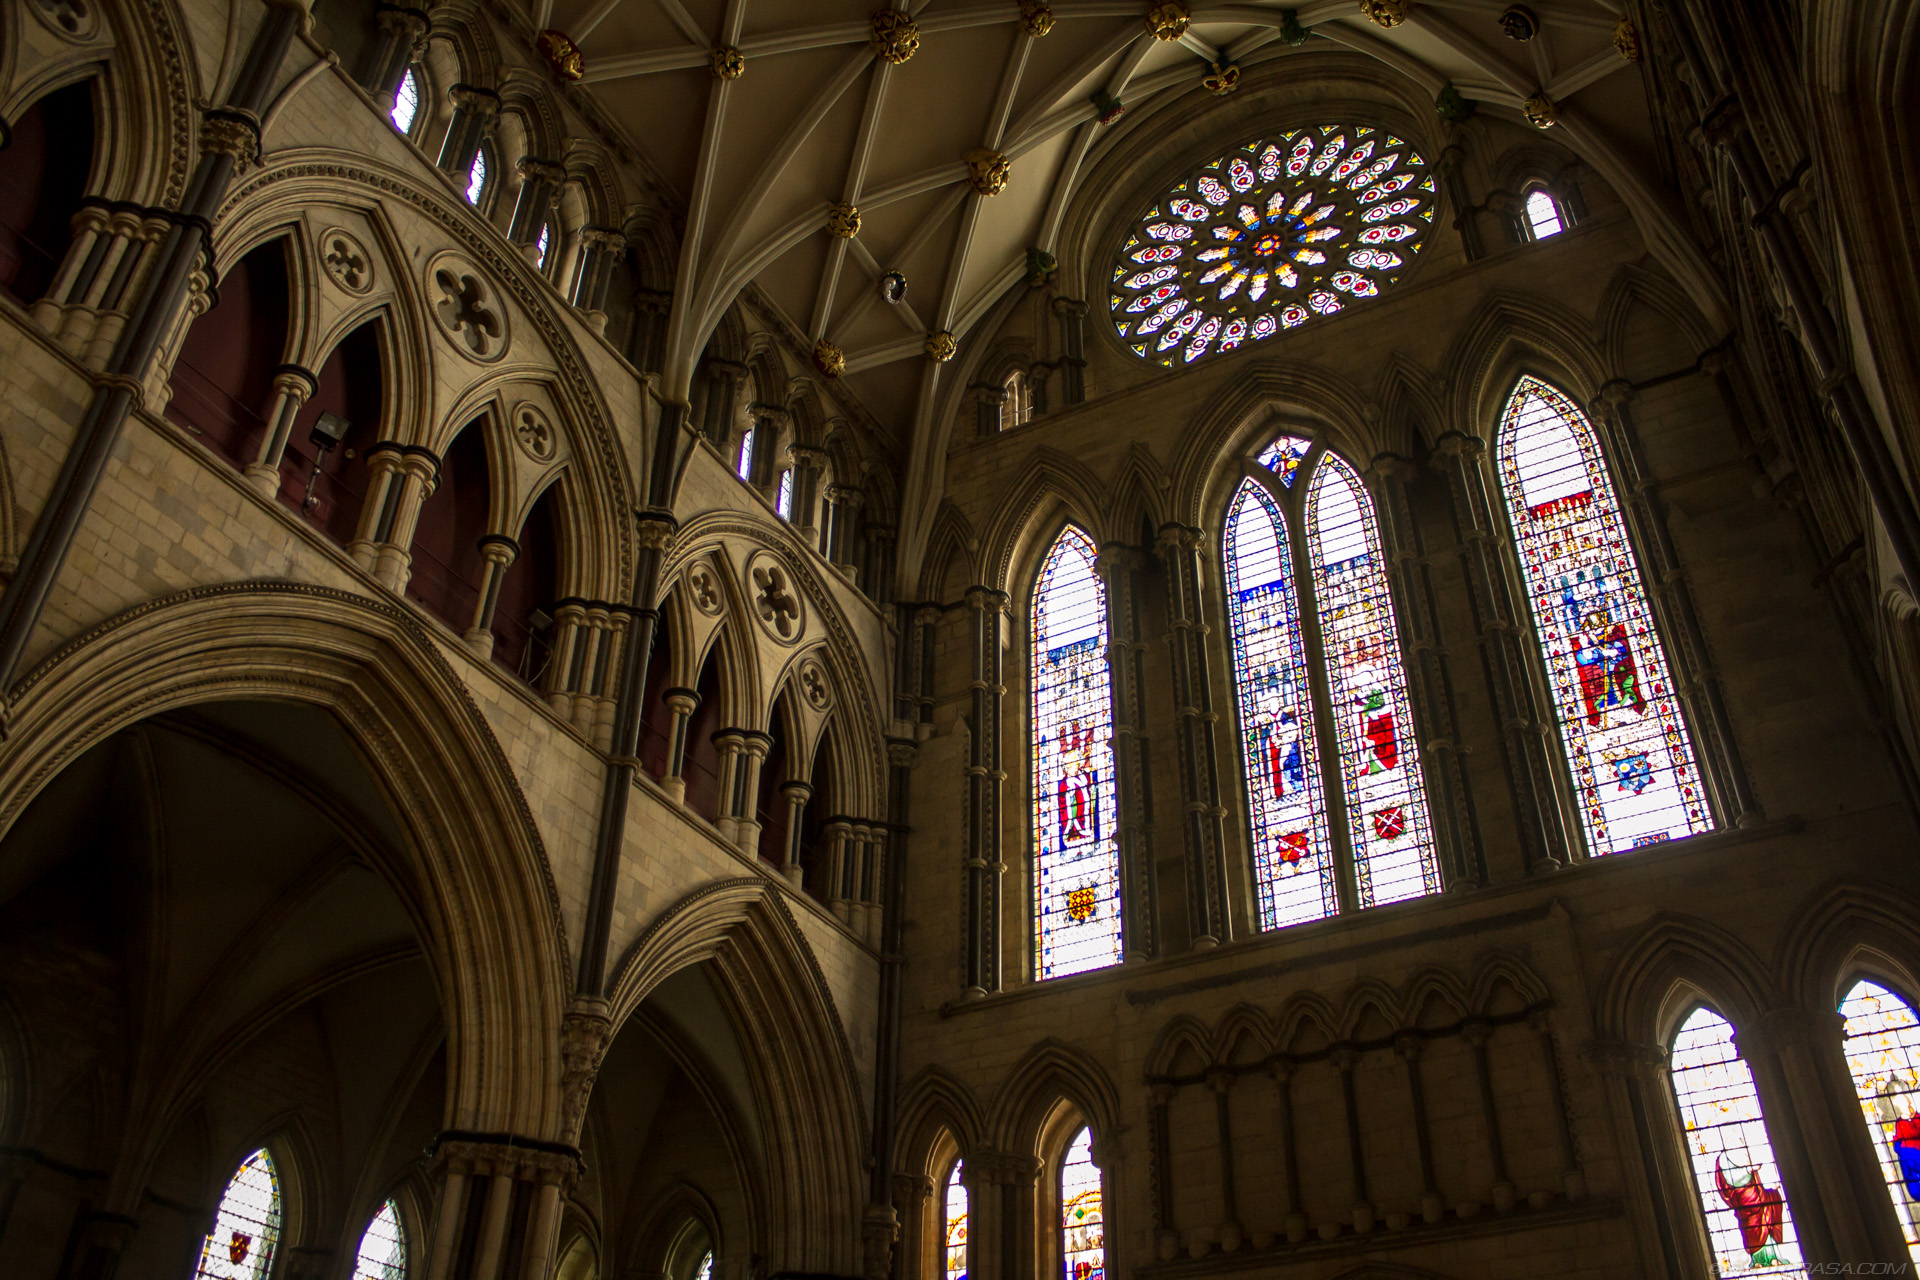 https://photorasa.com/yorkminster-cathedral/north-transept-five-sisters-window/